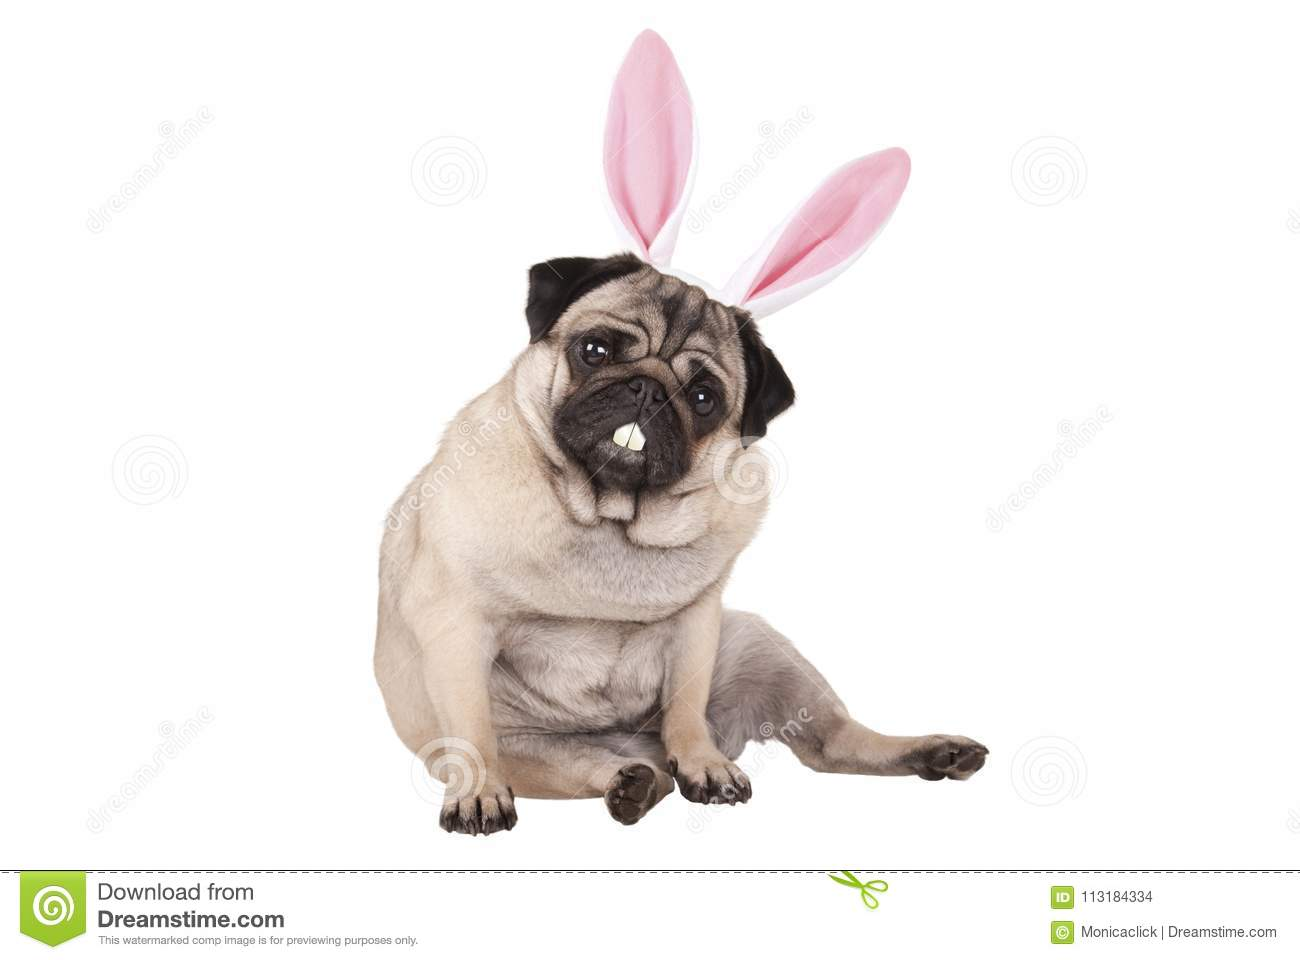 Adorable cute pug puppy dog sitting down with easter bunny ears and teeth